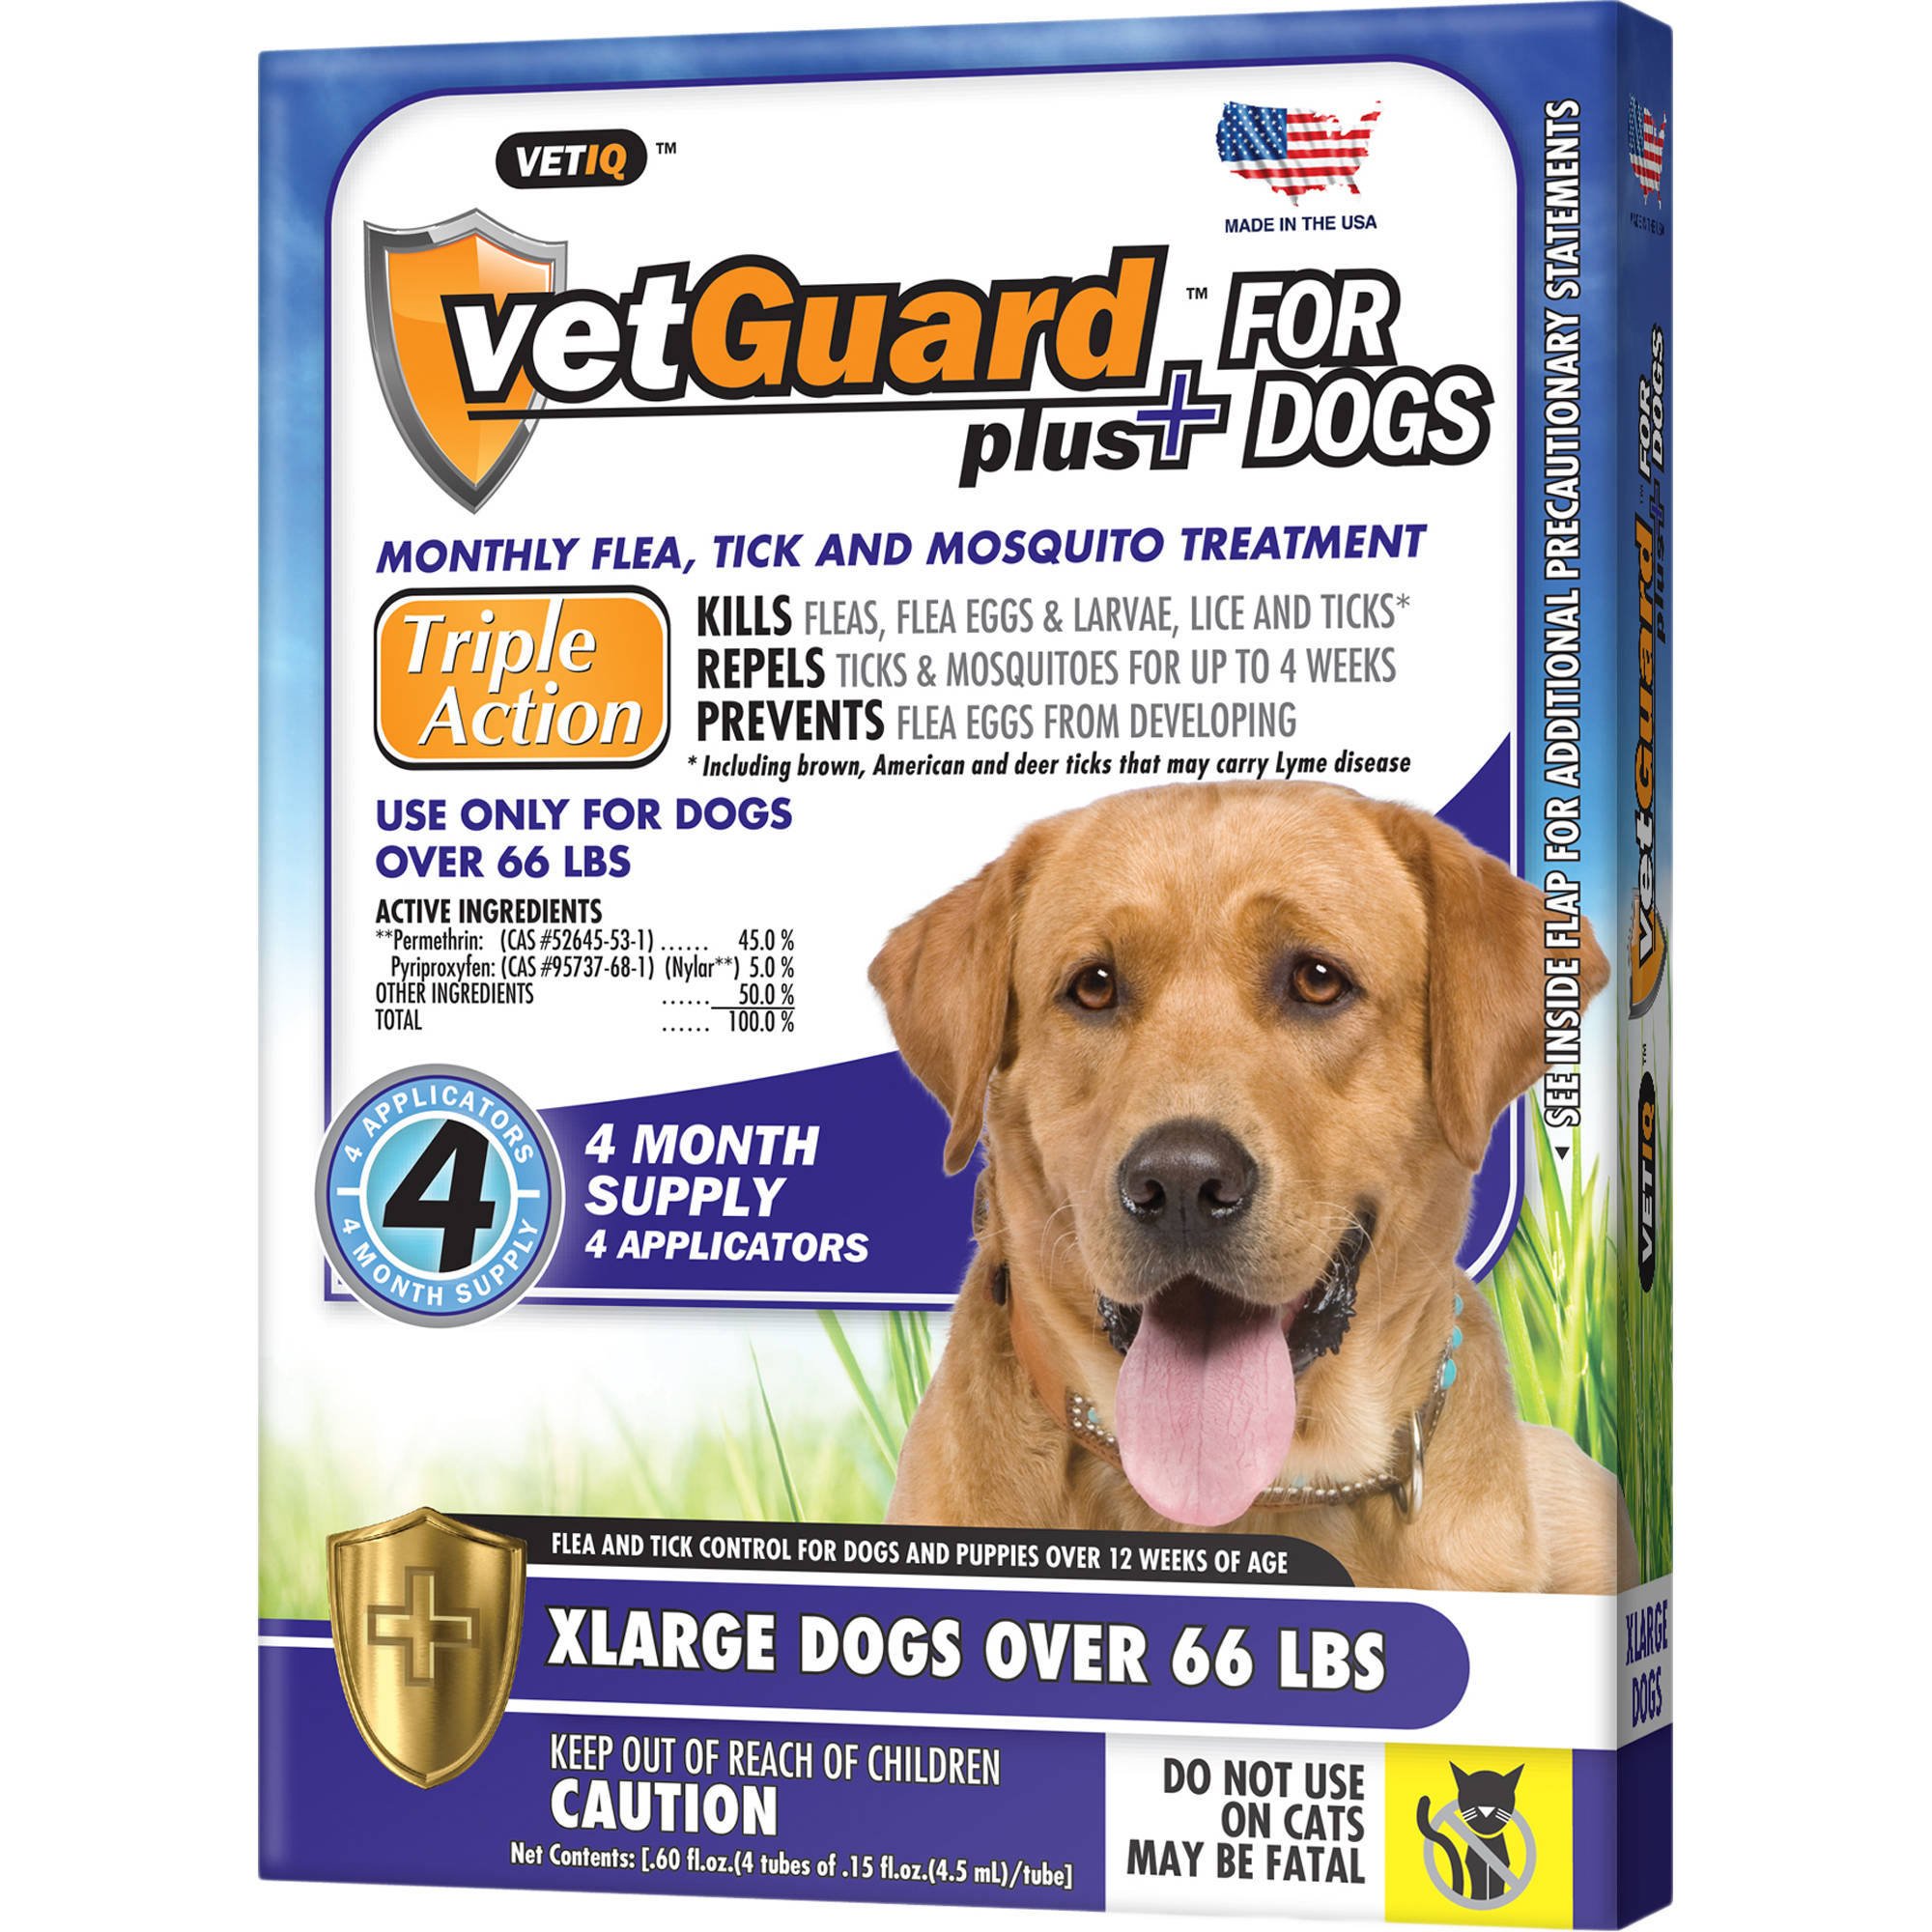 VetGuard Plus Flea and Tick Control for Extra Large Dogs